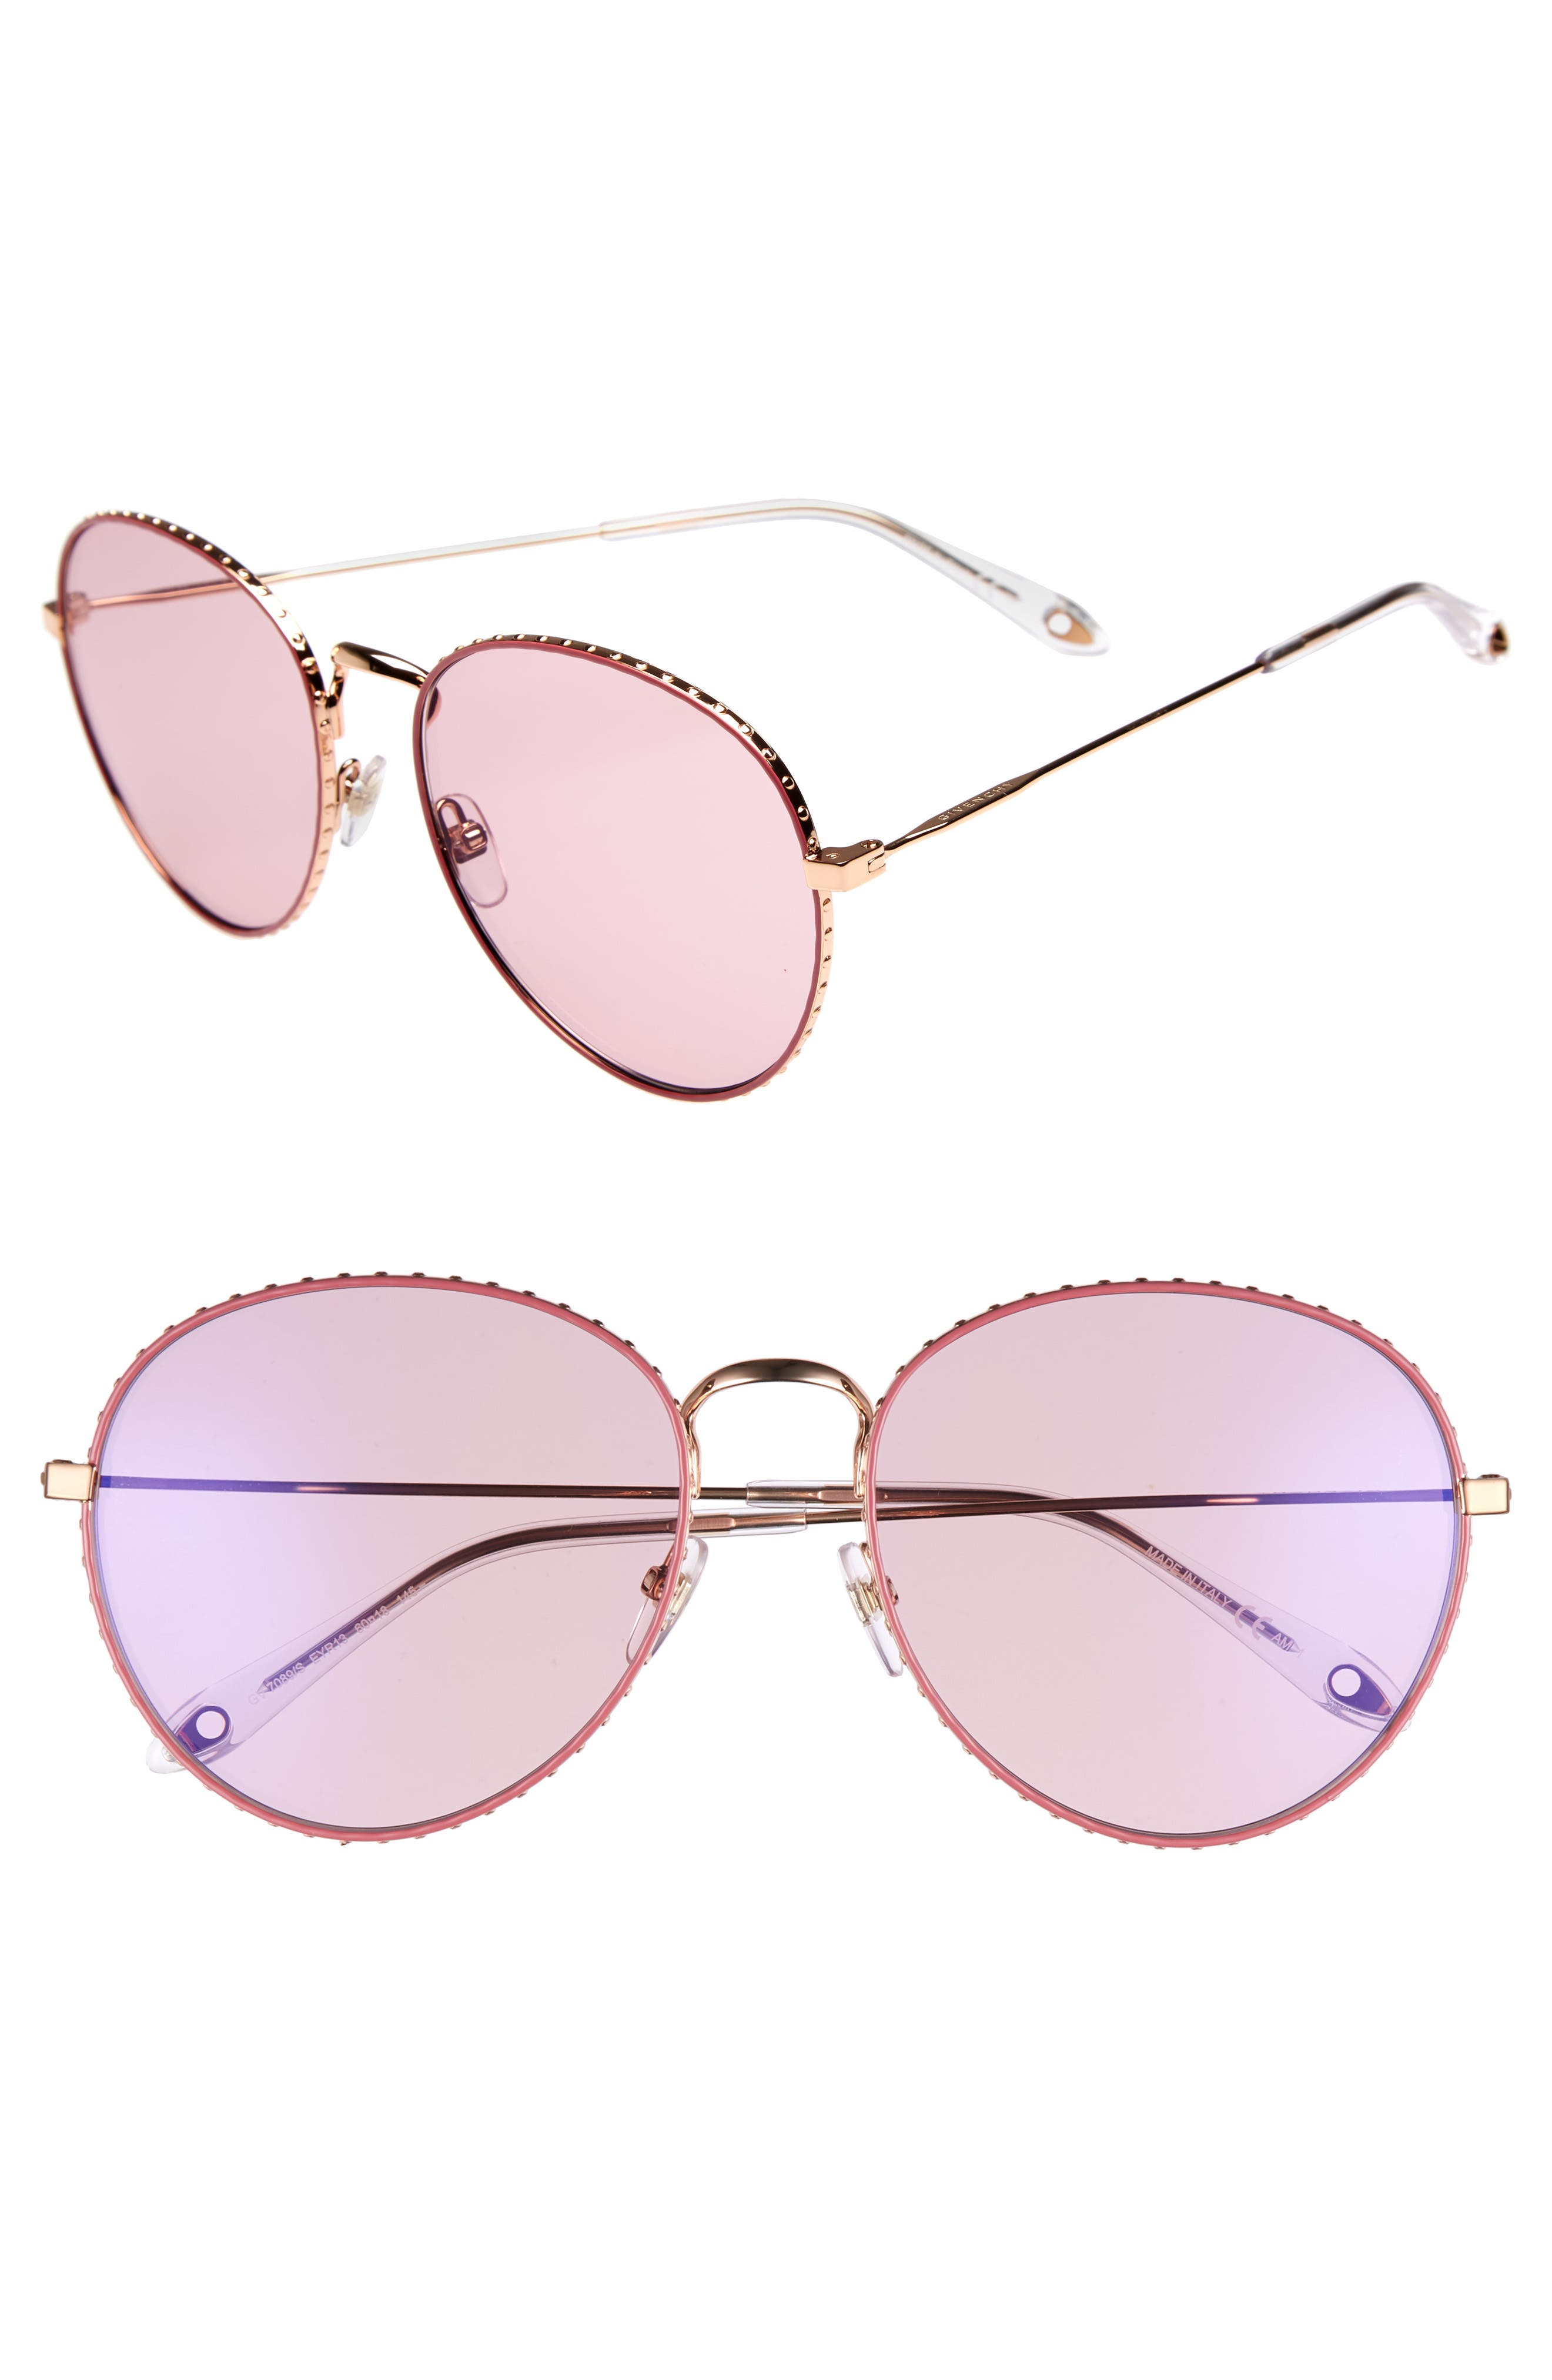 60mm Round Metal Sunglasses,                             Main thumbnail 1, color,                             710